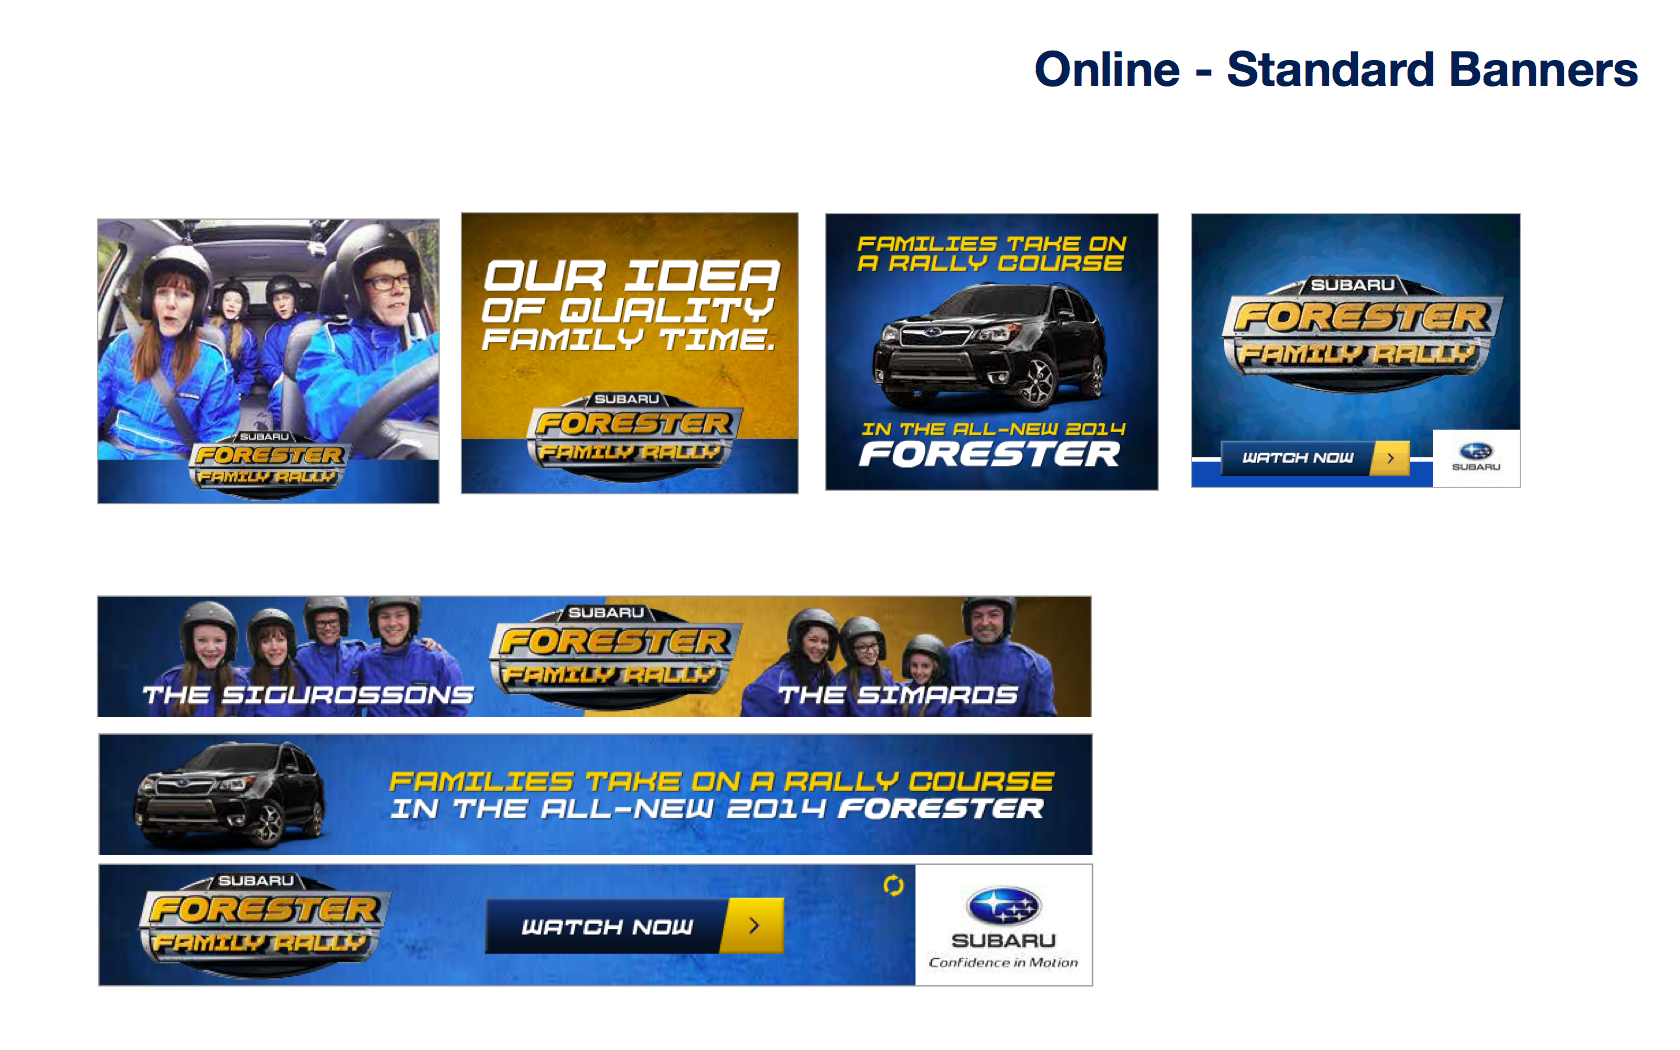 12325_Cassies_-_Subaru_Forester_Family_Rally_Creative_Elements.010